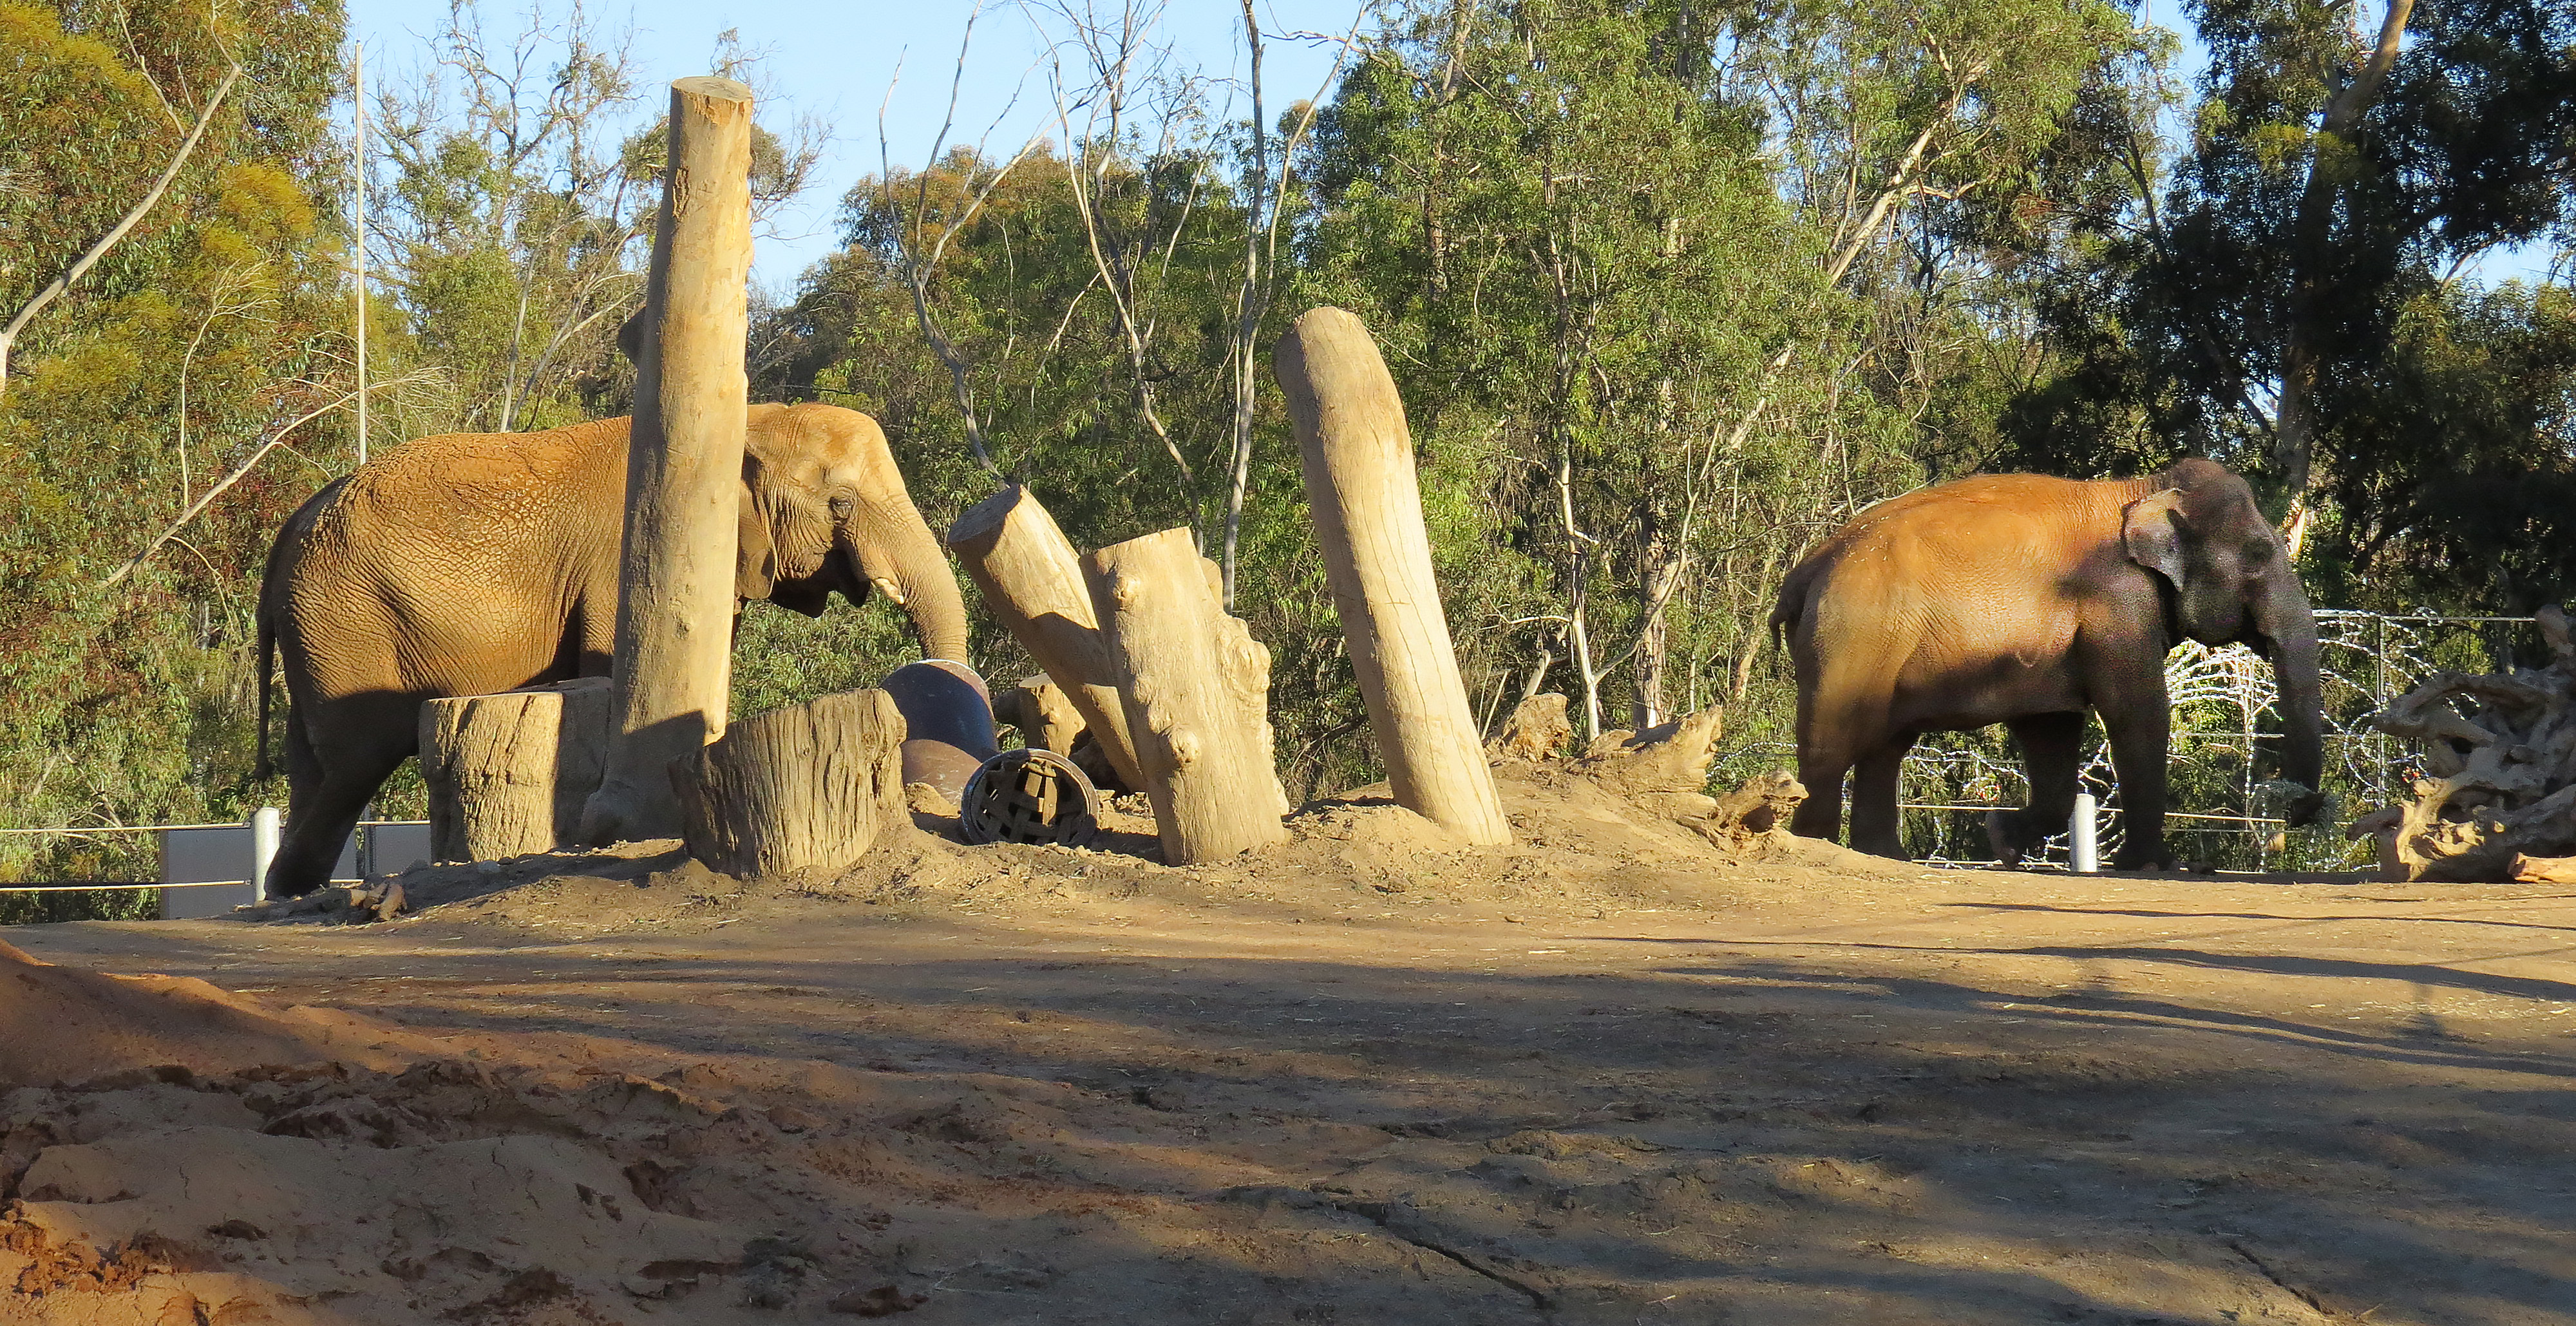 A pair of elephants in a roomy open-air enclosure.